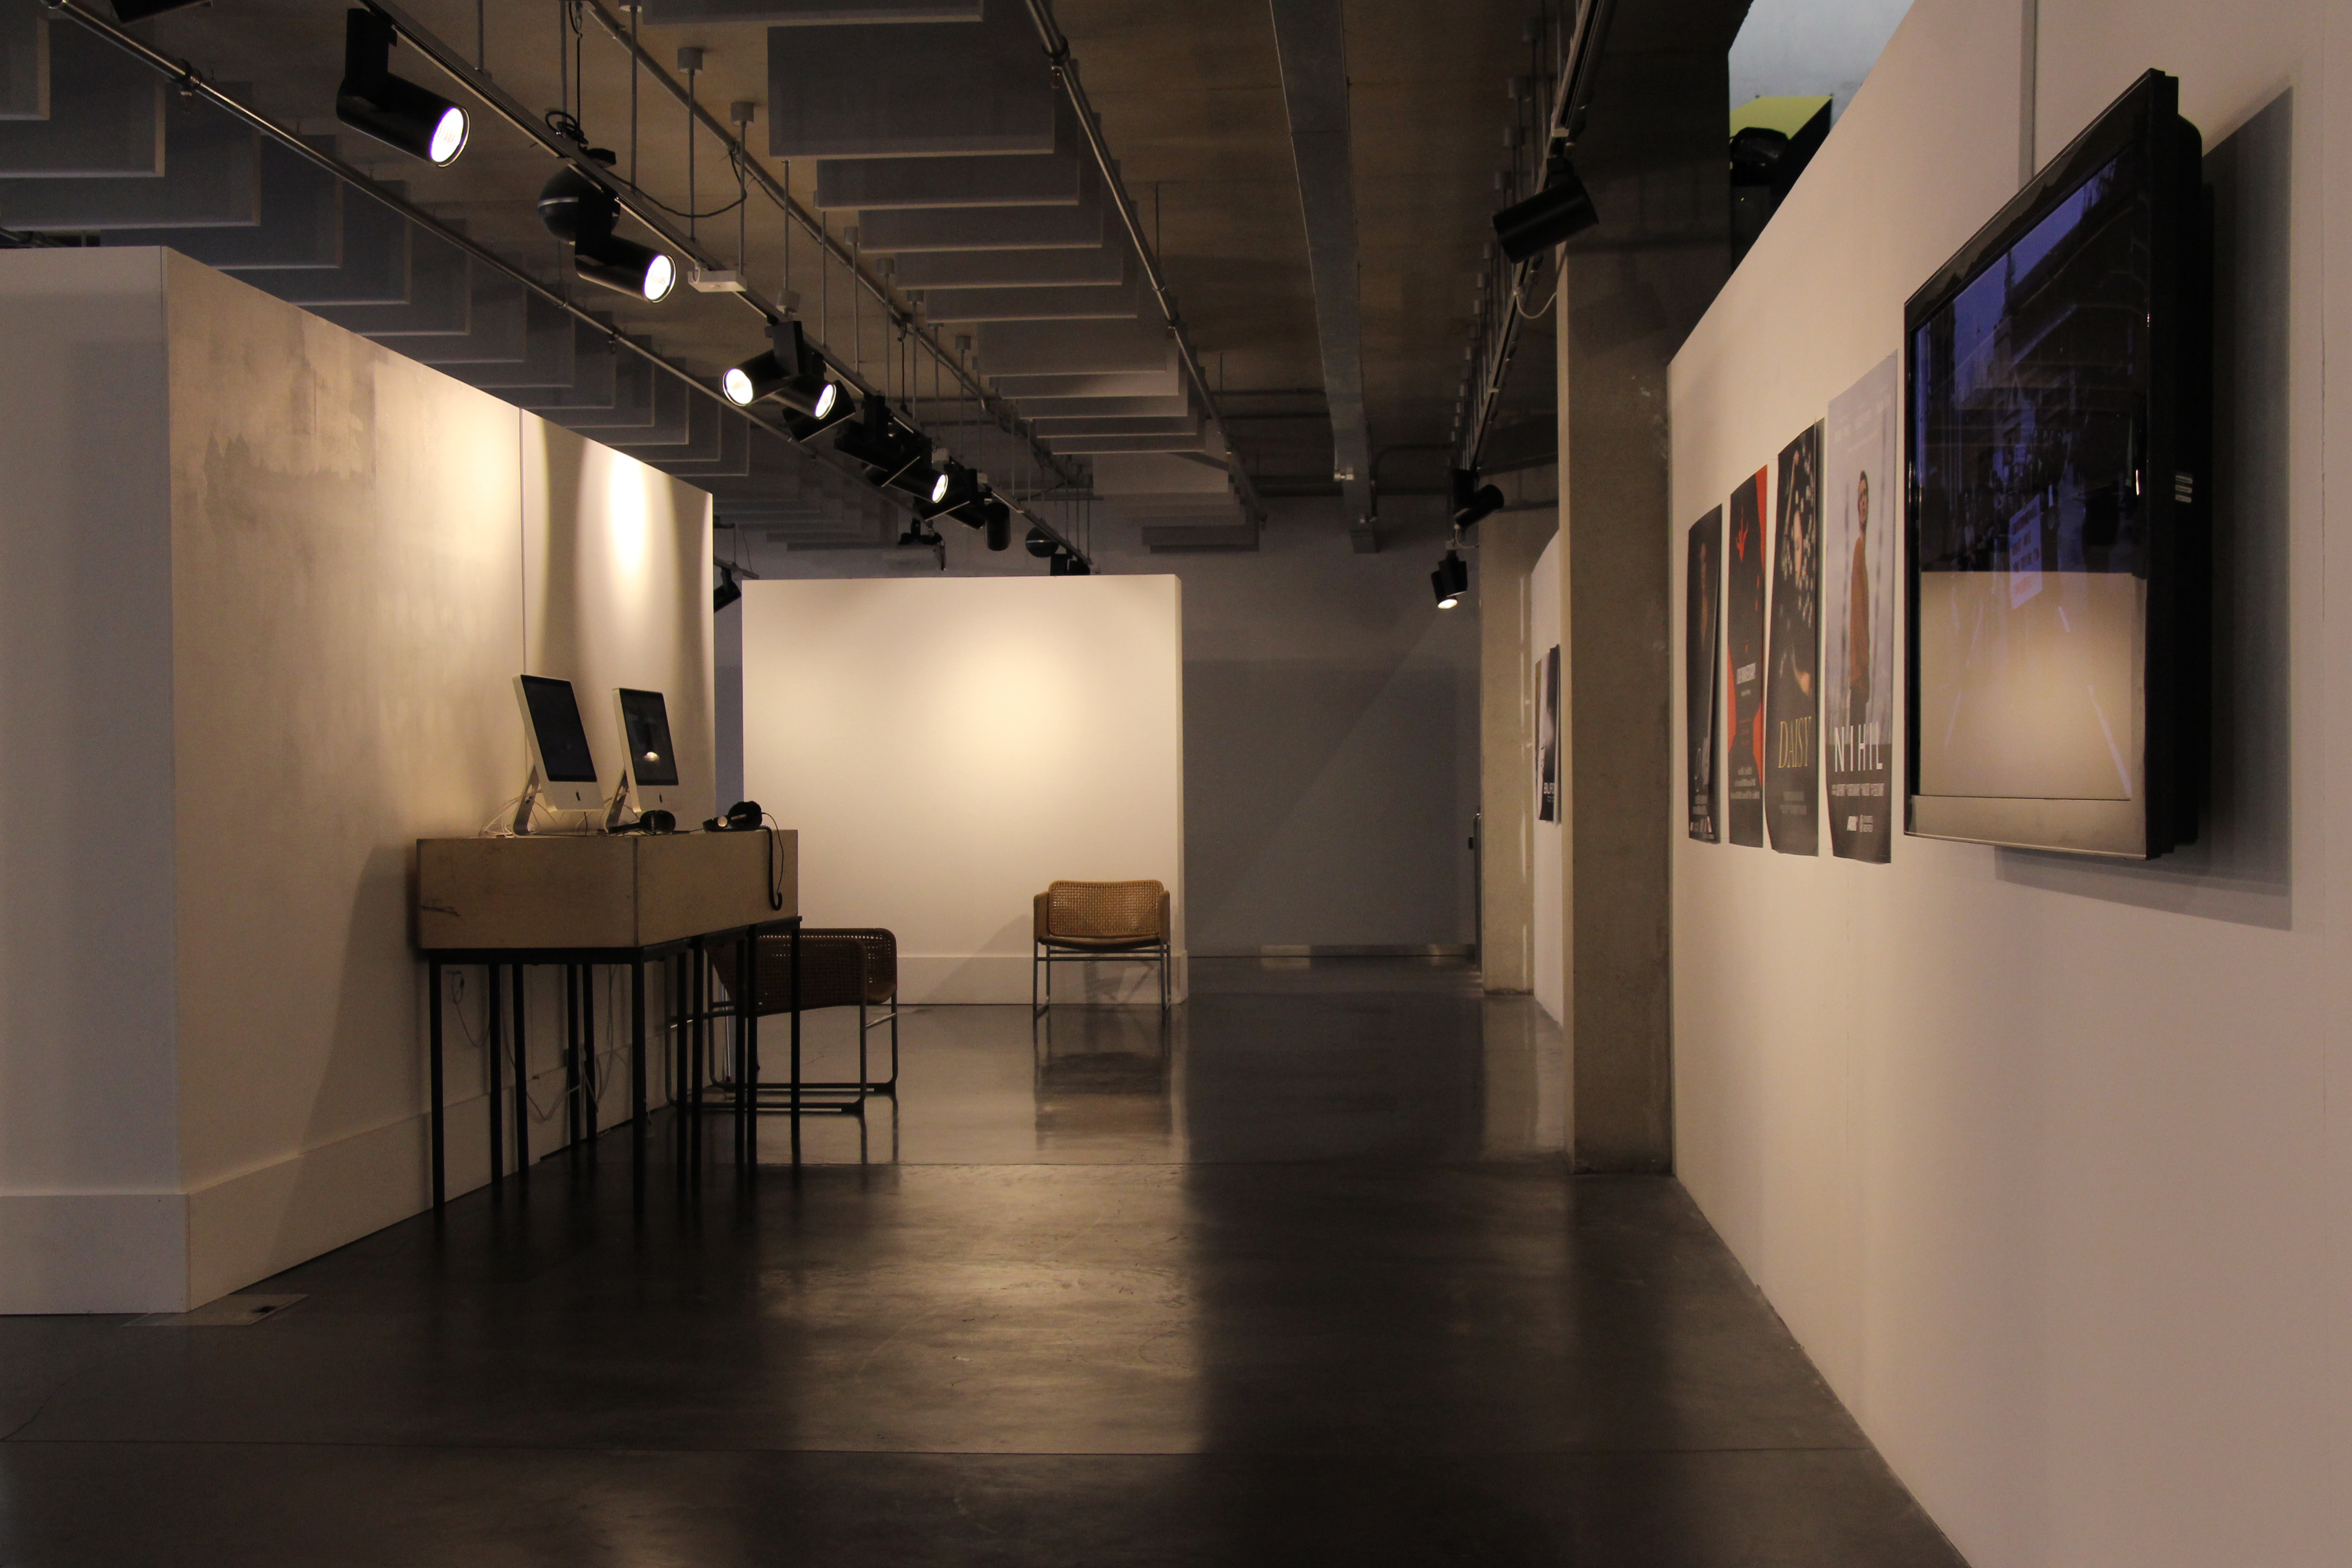 A gallery with posters, a tv screen, and computers installed